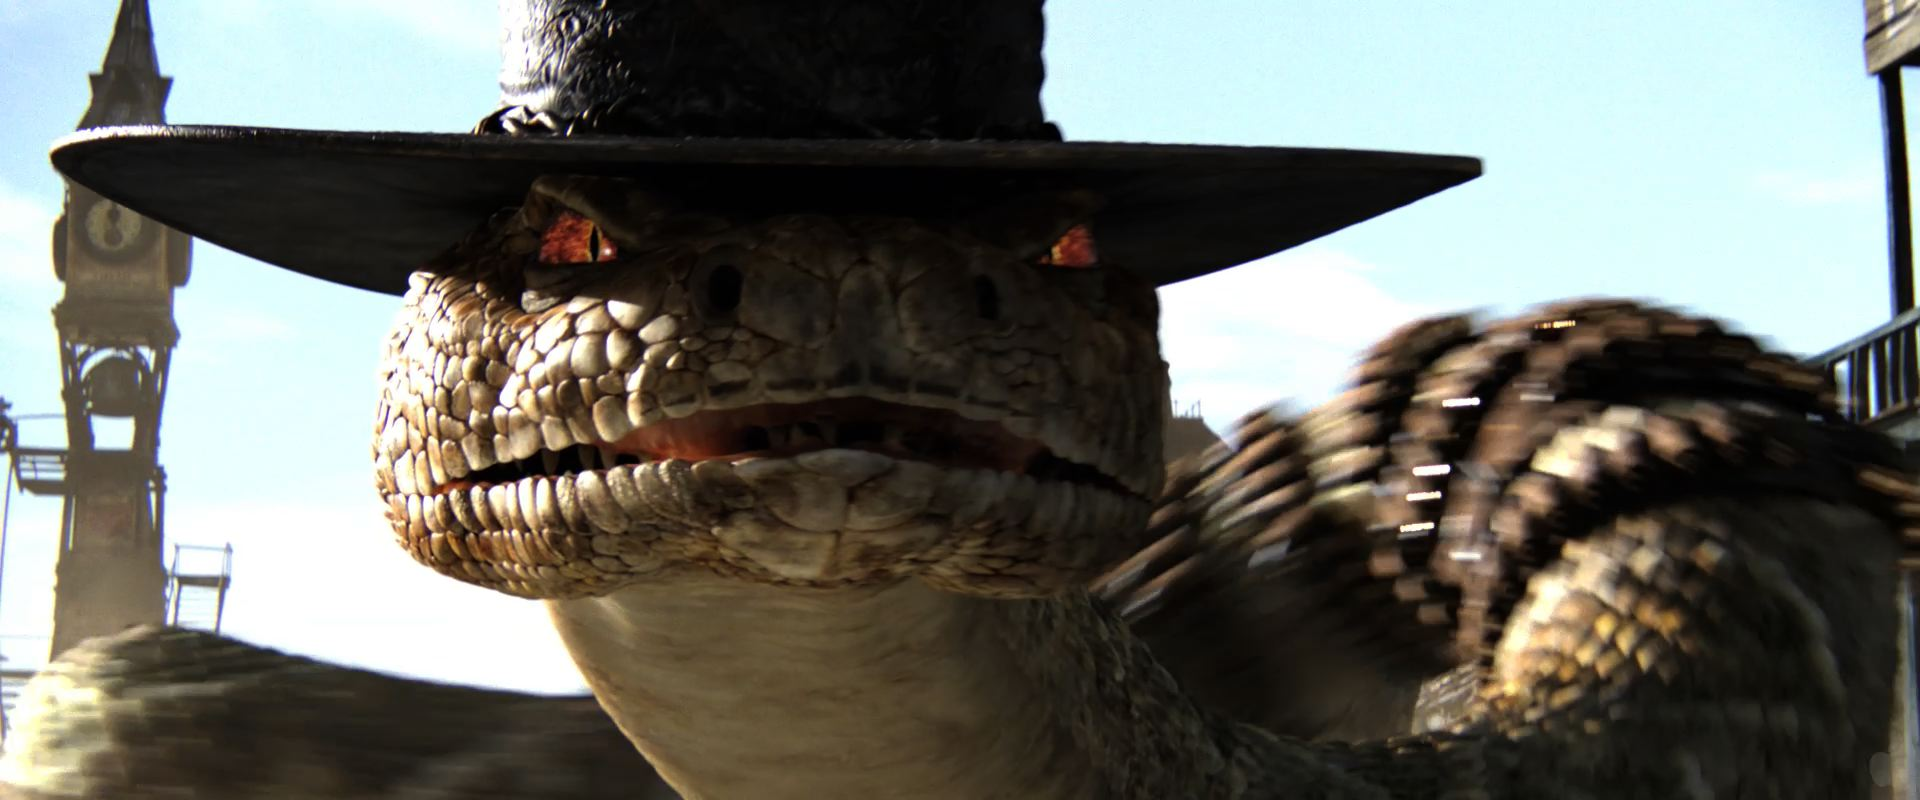 Rattlesnake-Jake-3-Rango-Wallpaper